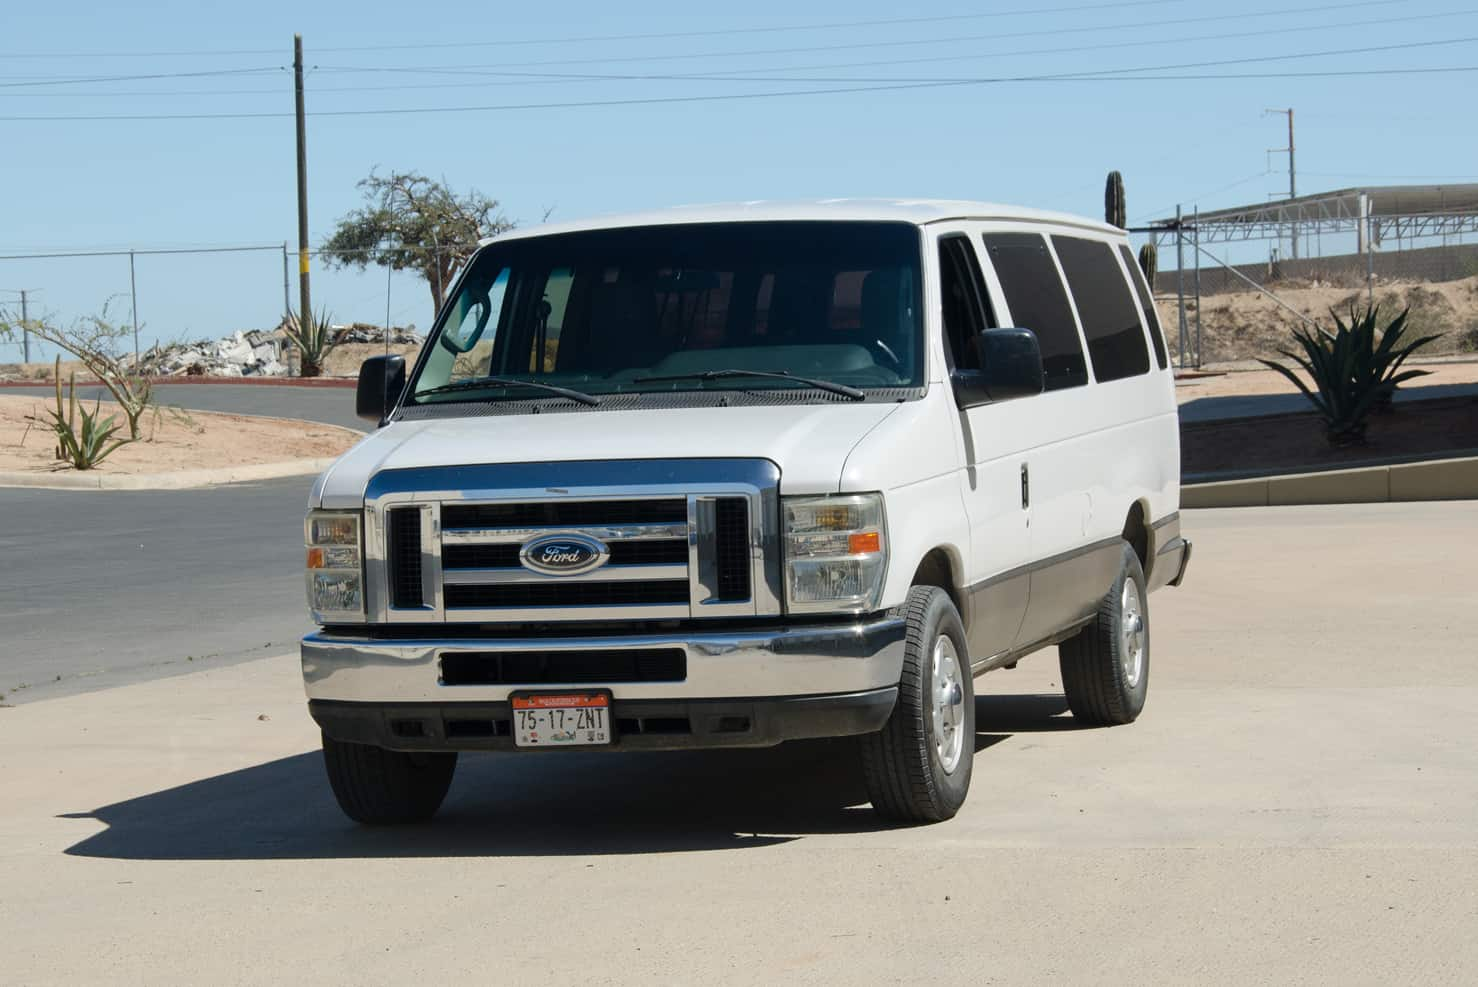 Ford Super Duty Vans 12 to 15 Passengers | BBB Rent a Car Los Cabos Mexico